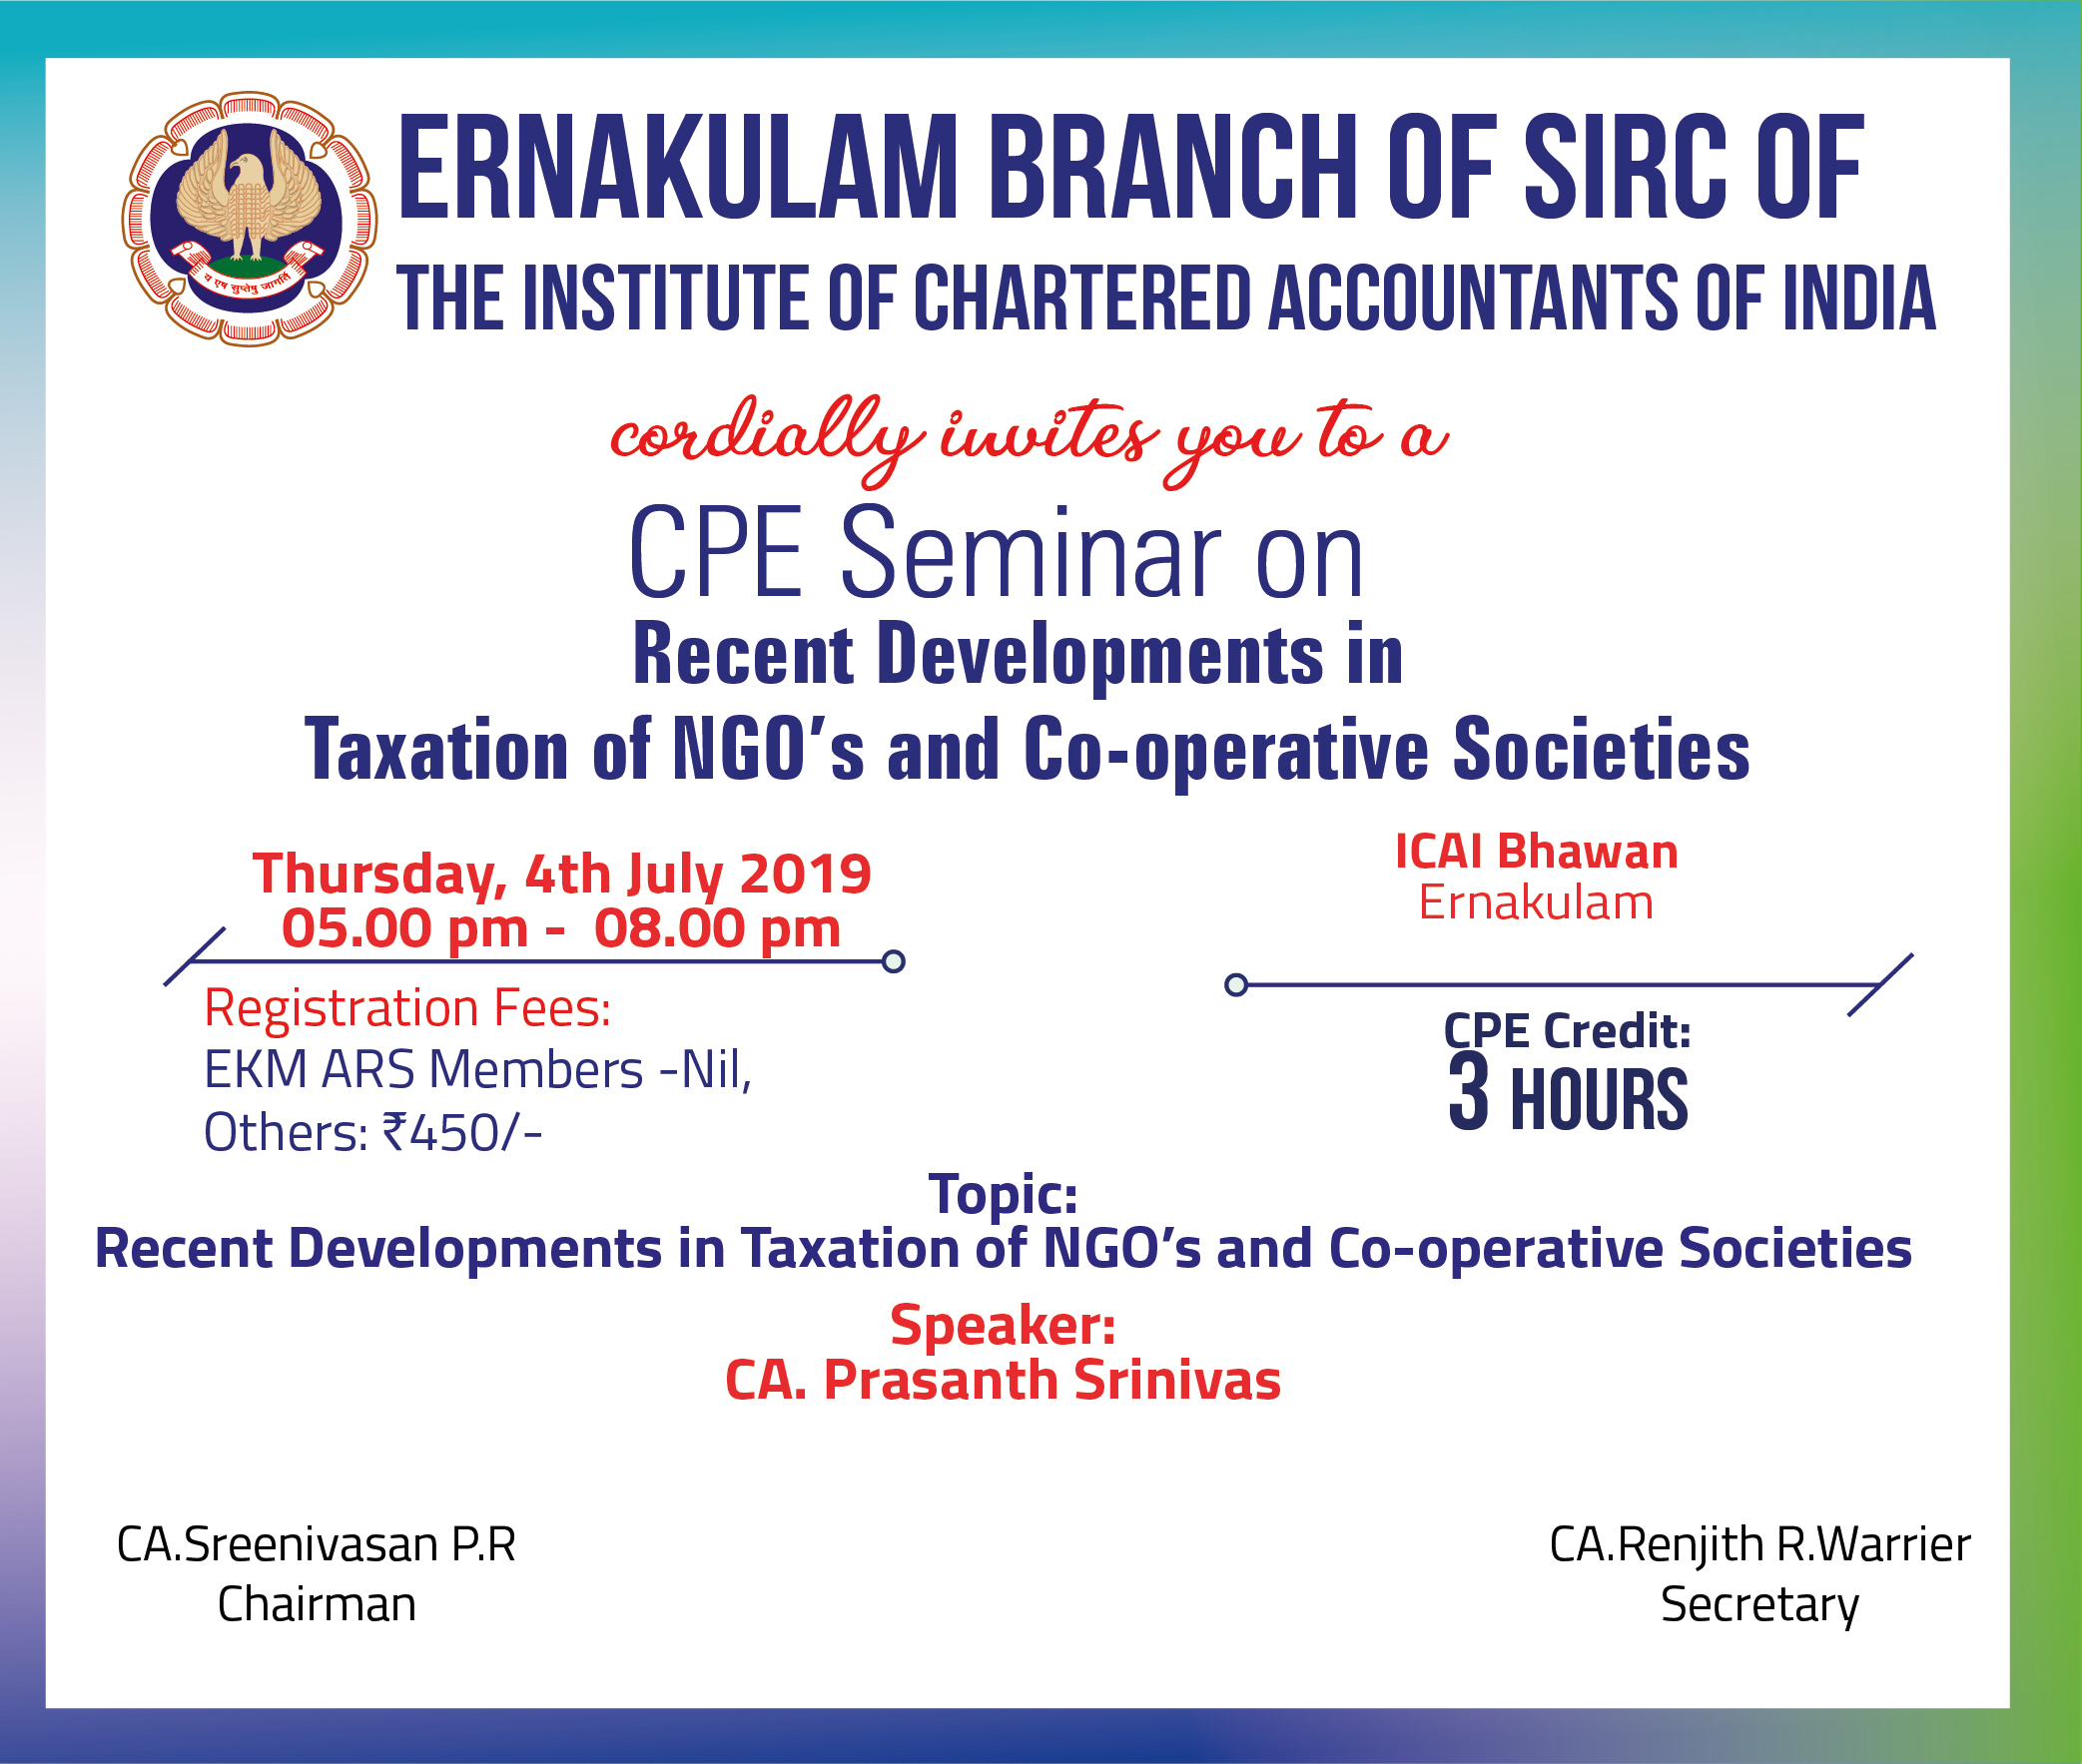 CPE Seminar on Recent Developments in Taxation of NGO's and Co-operative Societies